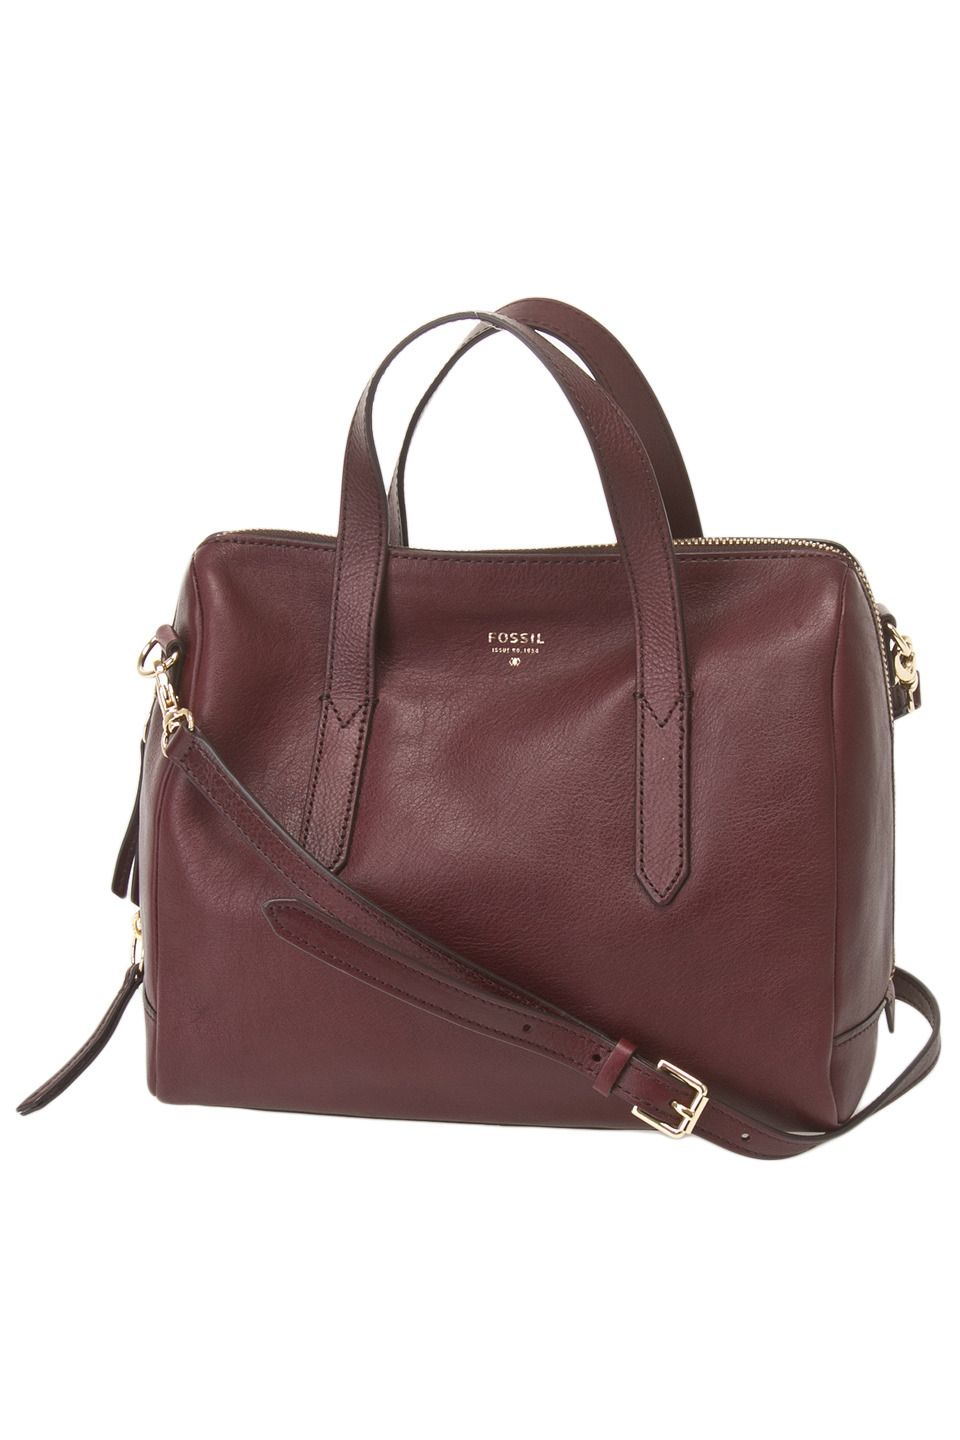 a9dba516133e Fossil - Sydney Satchel in Raisin - I wish this weren t discontinued ...